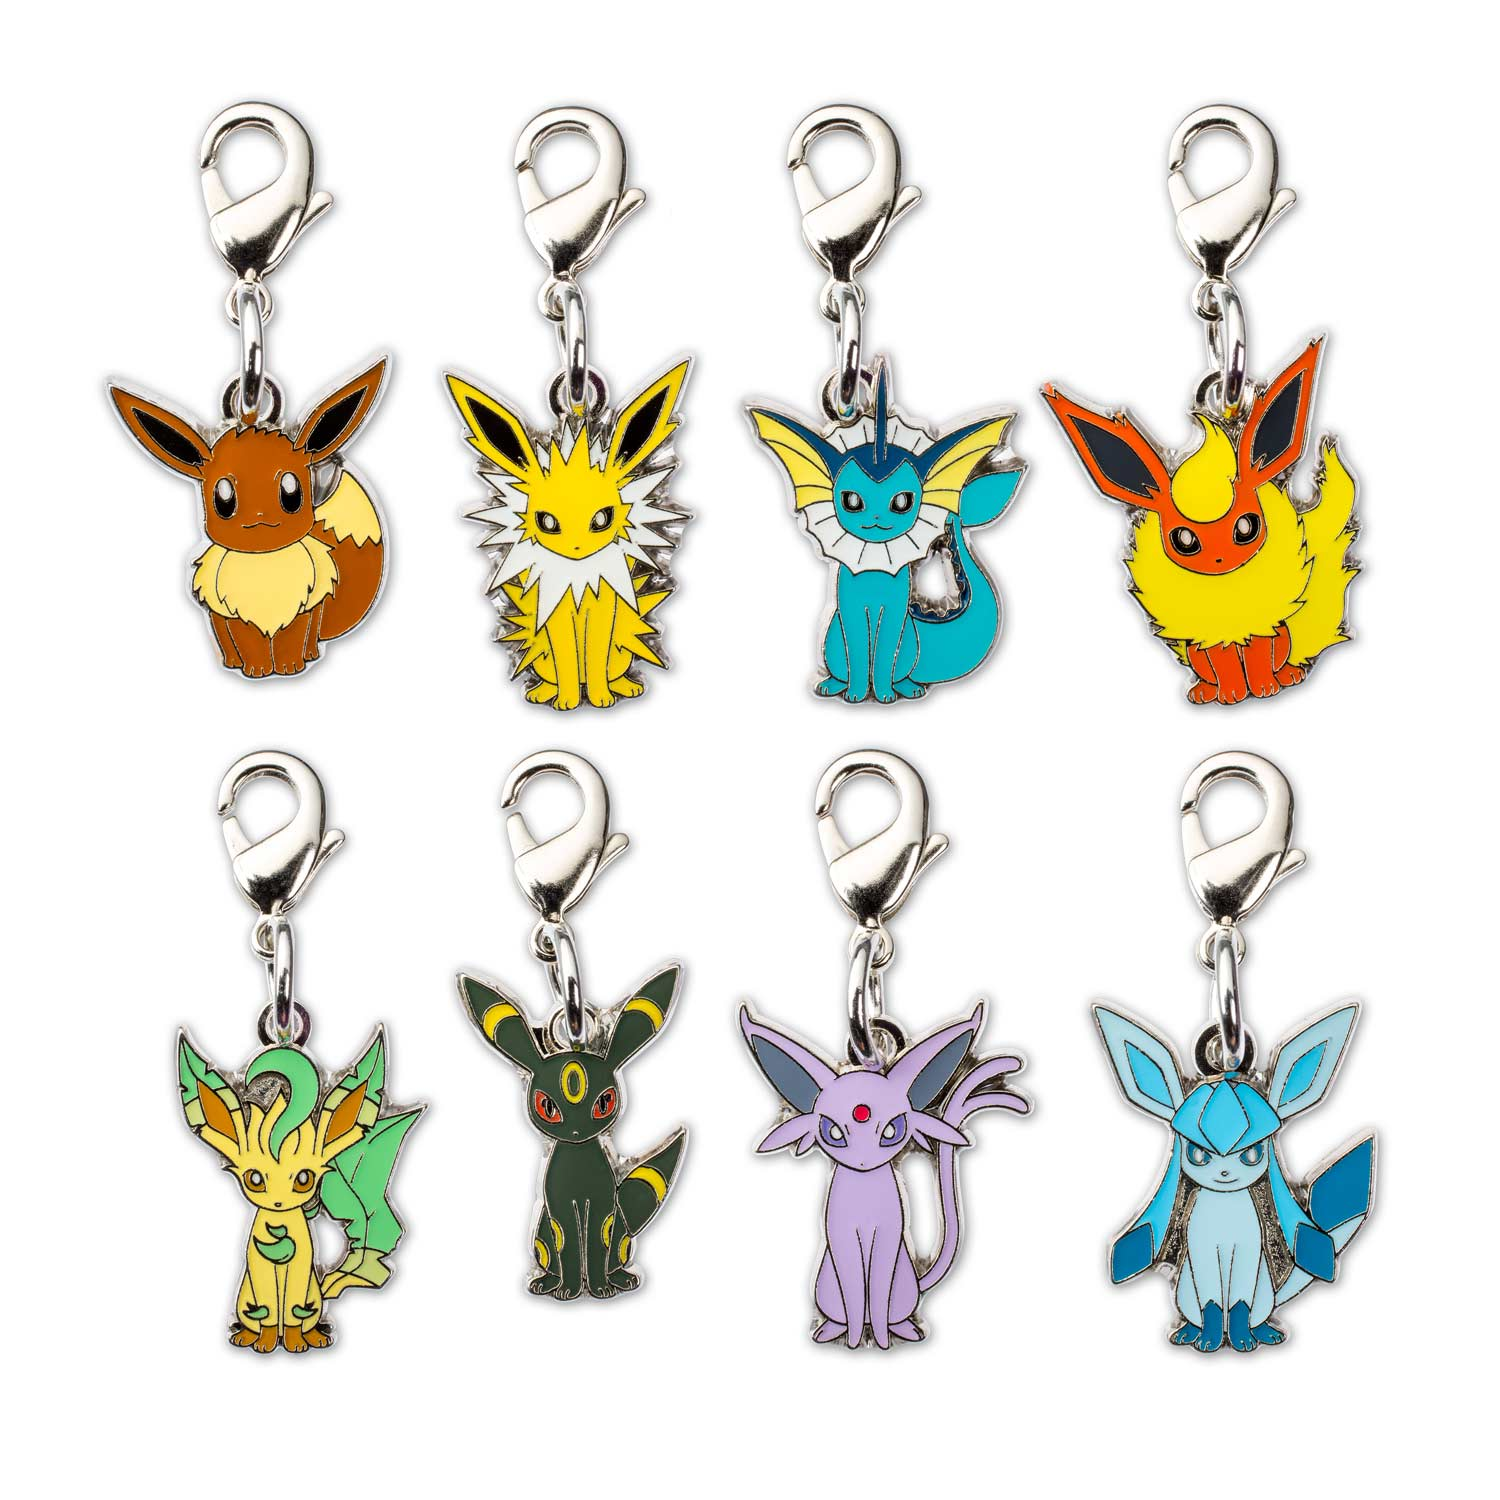 Image For Eevee And 7 Evolution Pokemon Minis Evo 8 Pack From Center